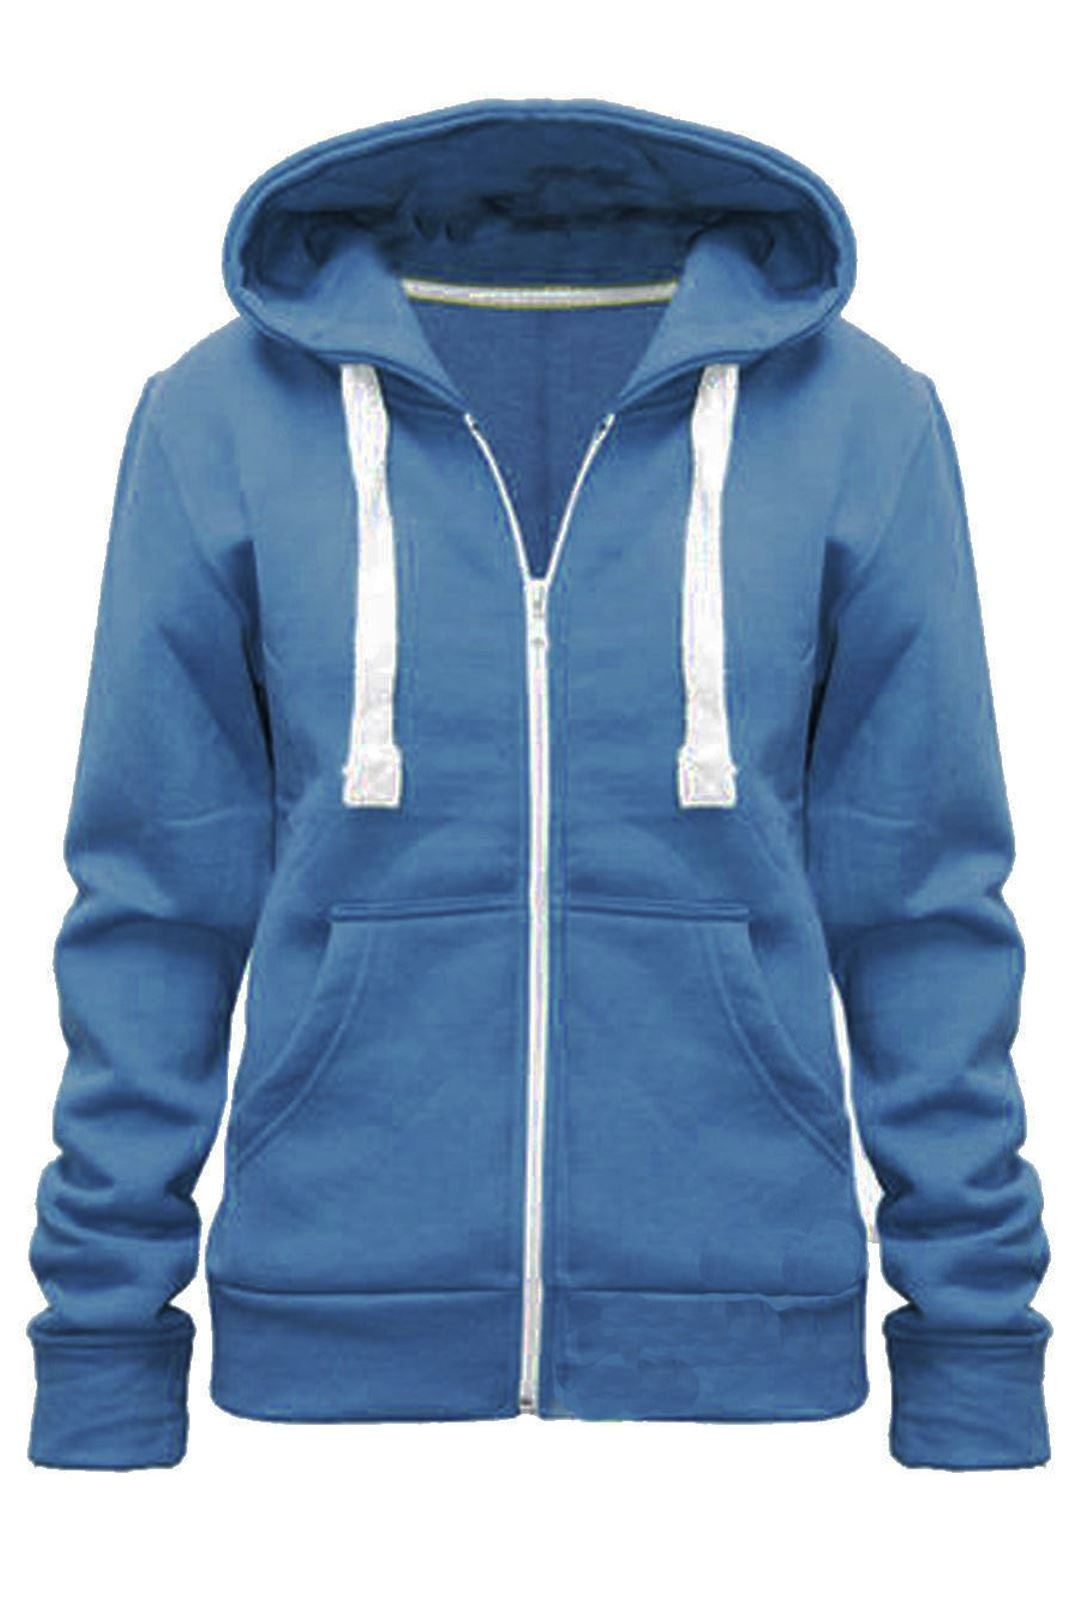 Looking for womens hoodies and sweatshirts that are cute, cozy and comfortable? Whether you're looking for a cute graphic sweatshirt for hanging out with friends, or the perfect hoodie for after a workout, shop Tillys selection of hoodies and sweatshirts for women and .